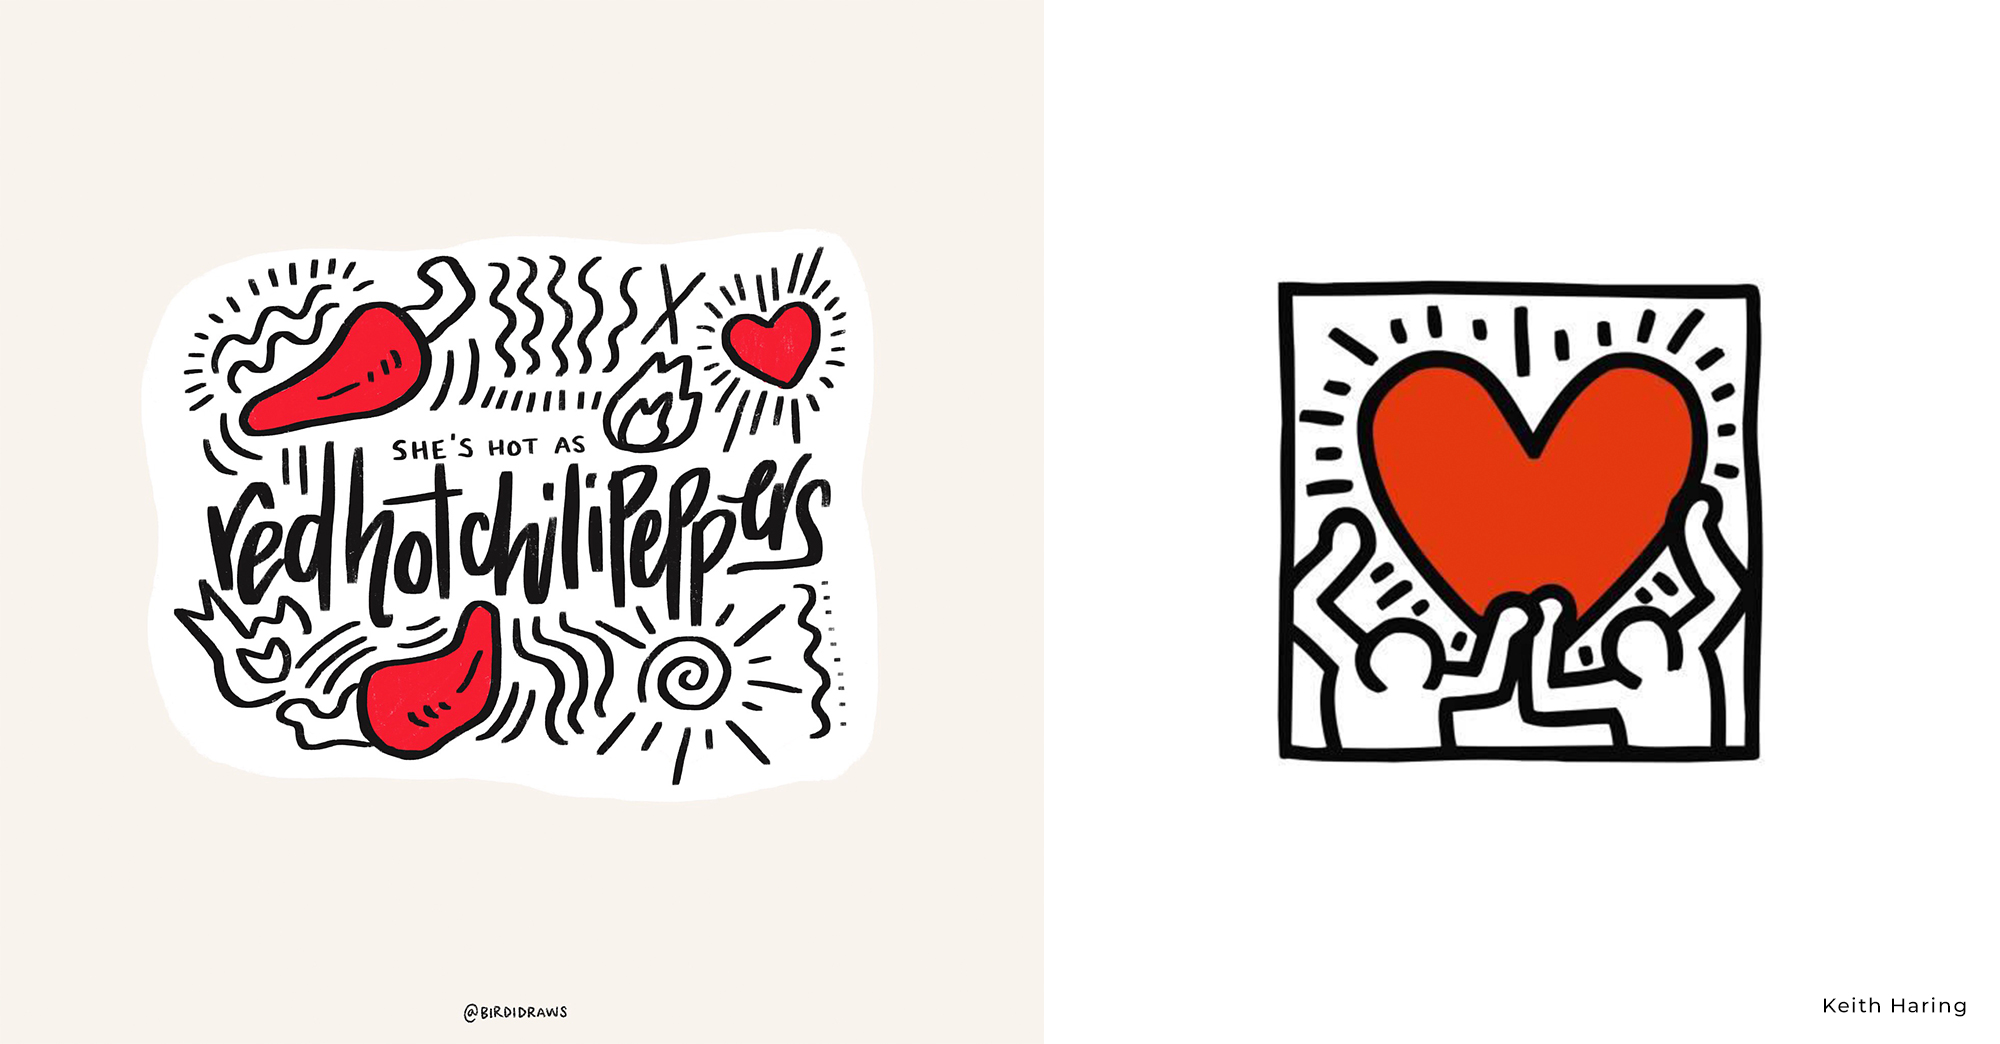 Roy Woods vs Keith Haring